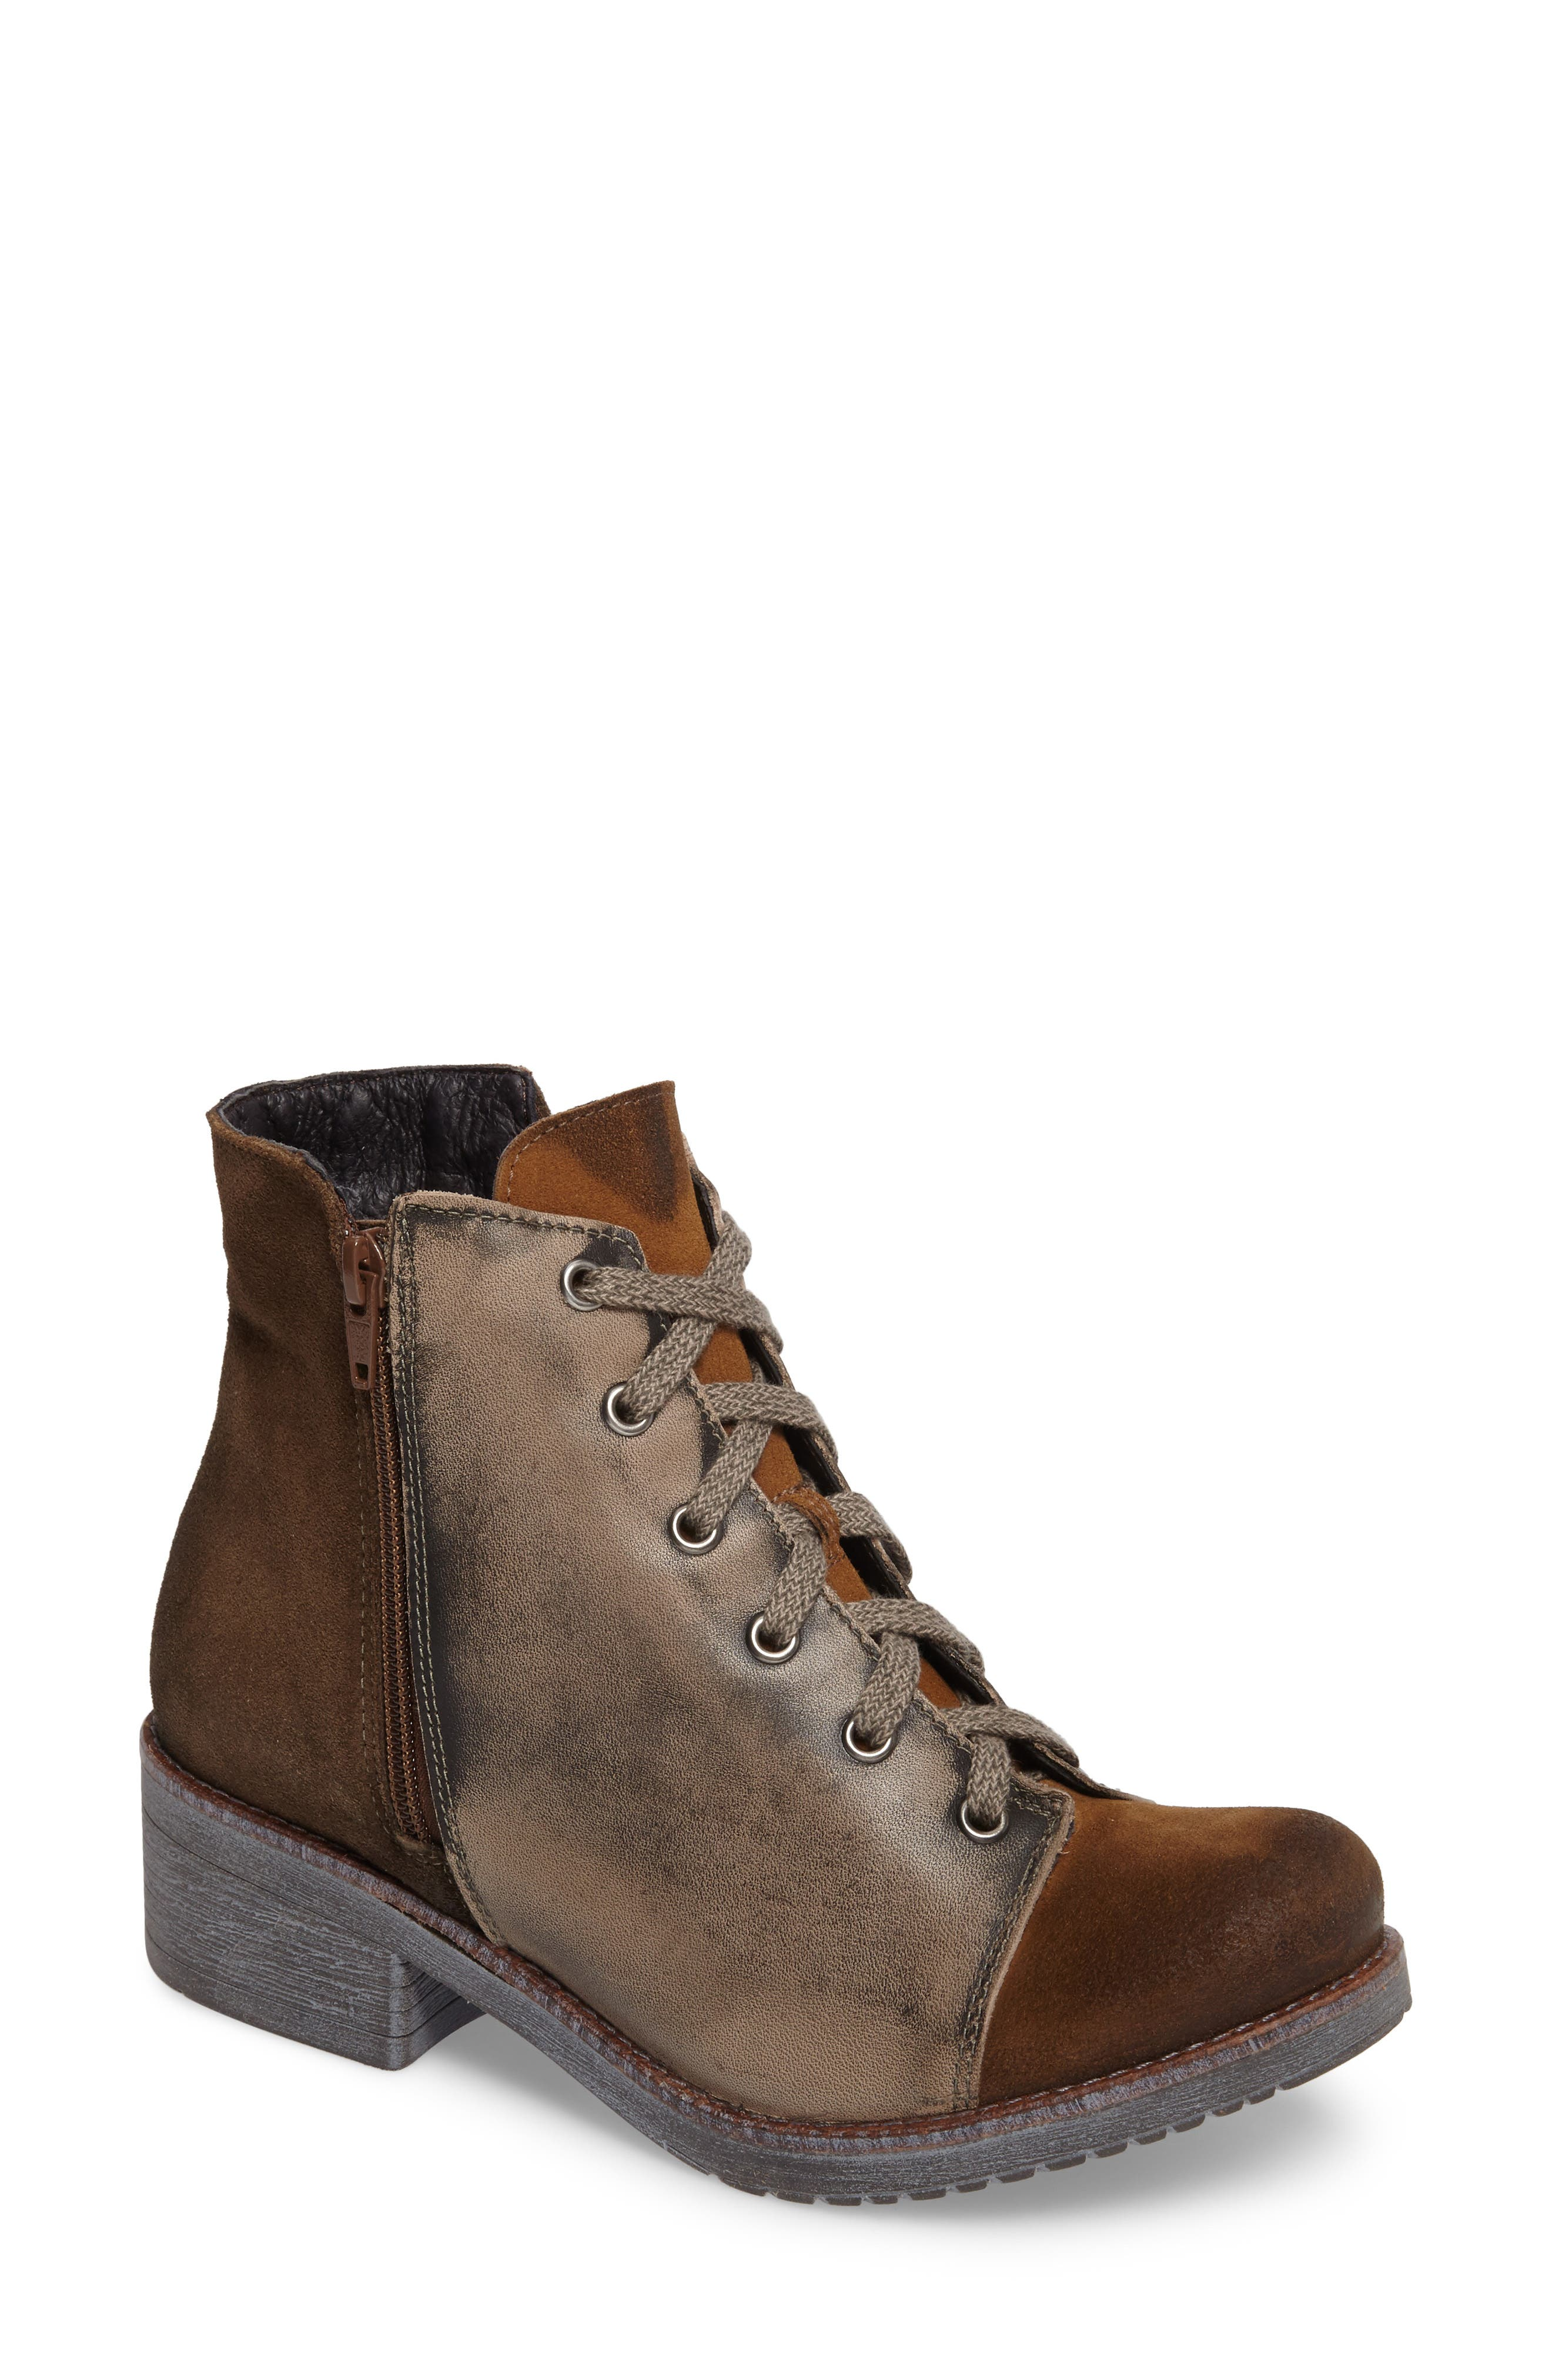 Alternate Image 1 Selected - Naot Groovy Lace Up Bootie (Women)